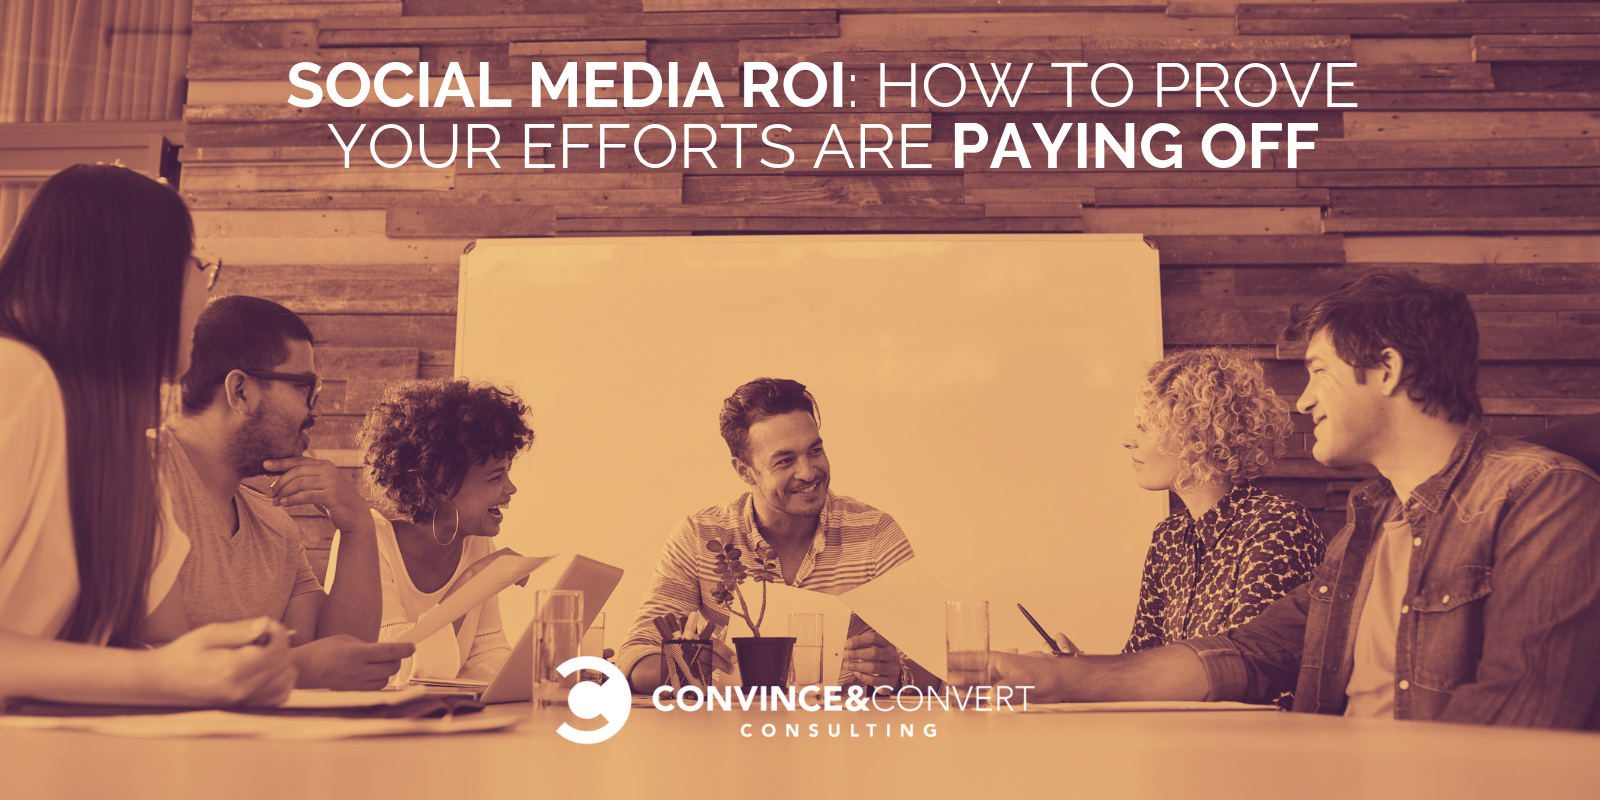 Social Media ROI: How to Prove Your Efforts Are Paying Off